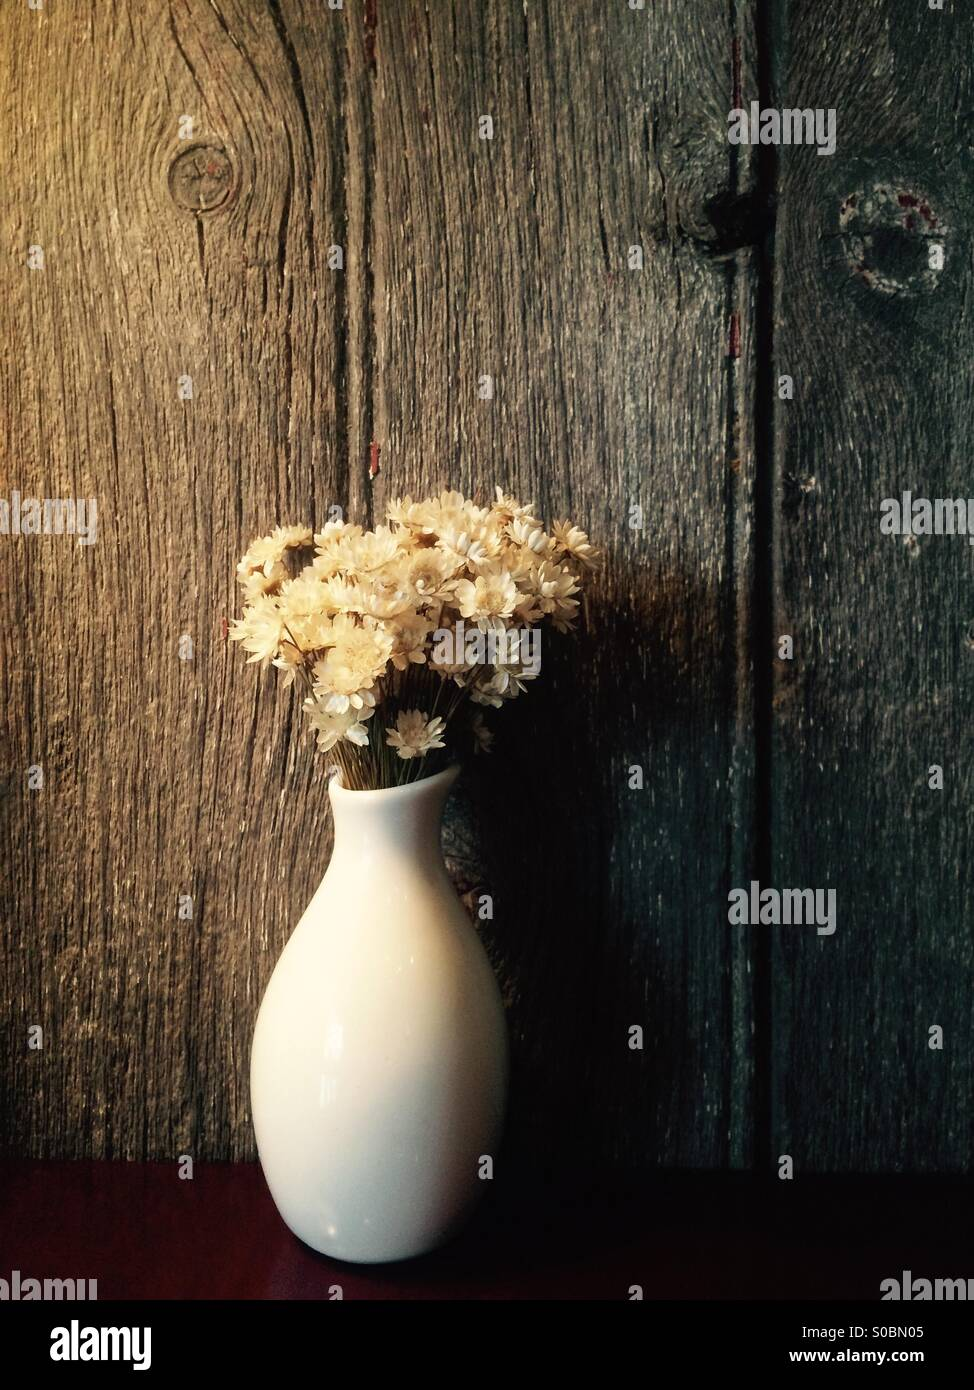 Flowers against a barn-wood wall - Stock Image